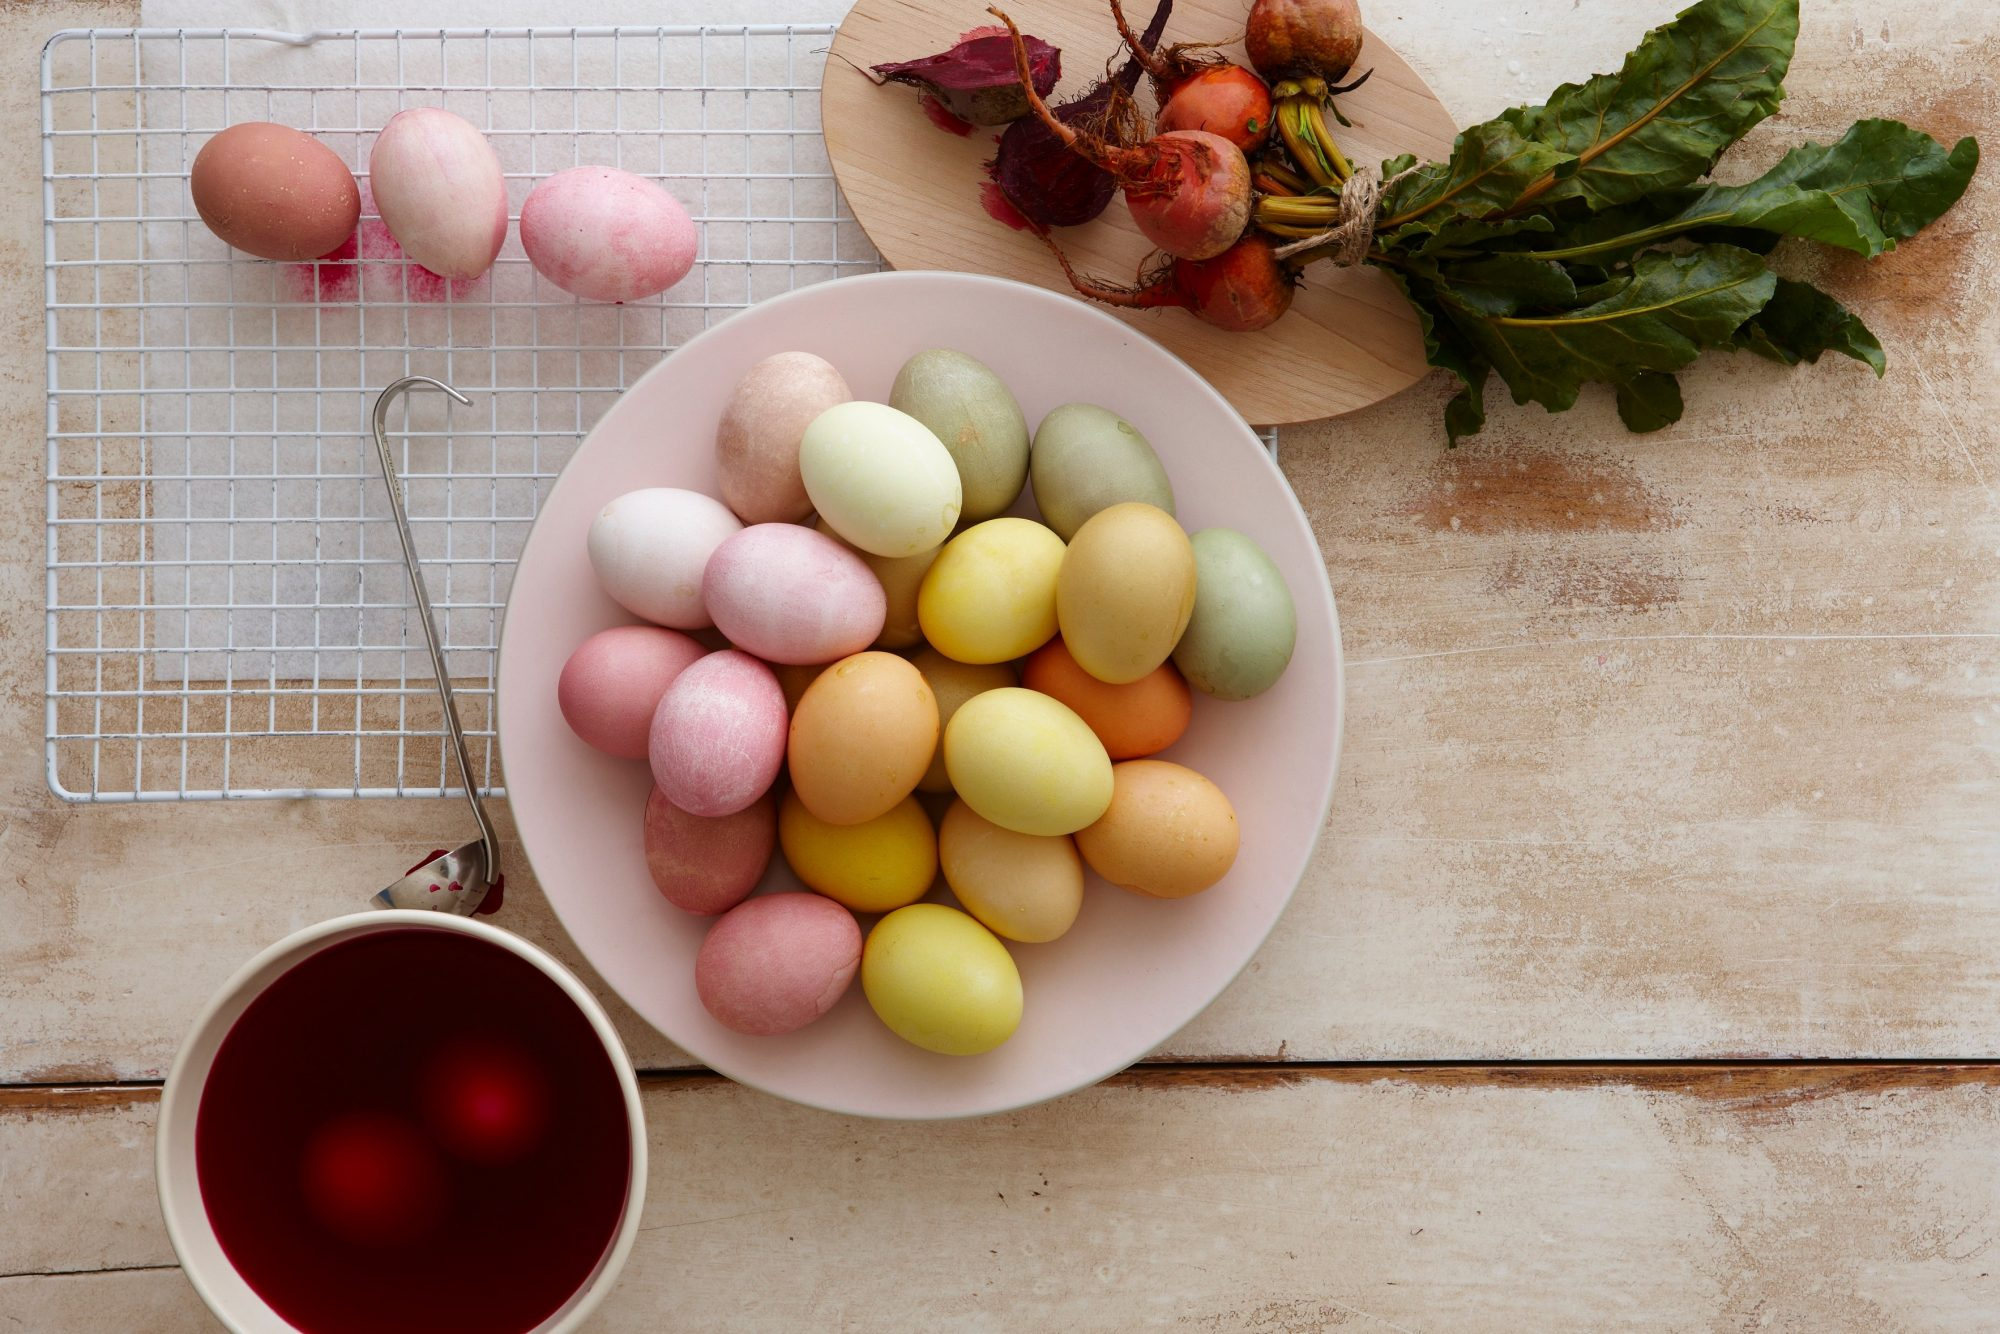 bowl of Easter eggs dyed with various natural dyes made from plants